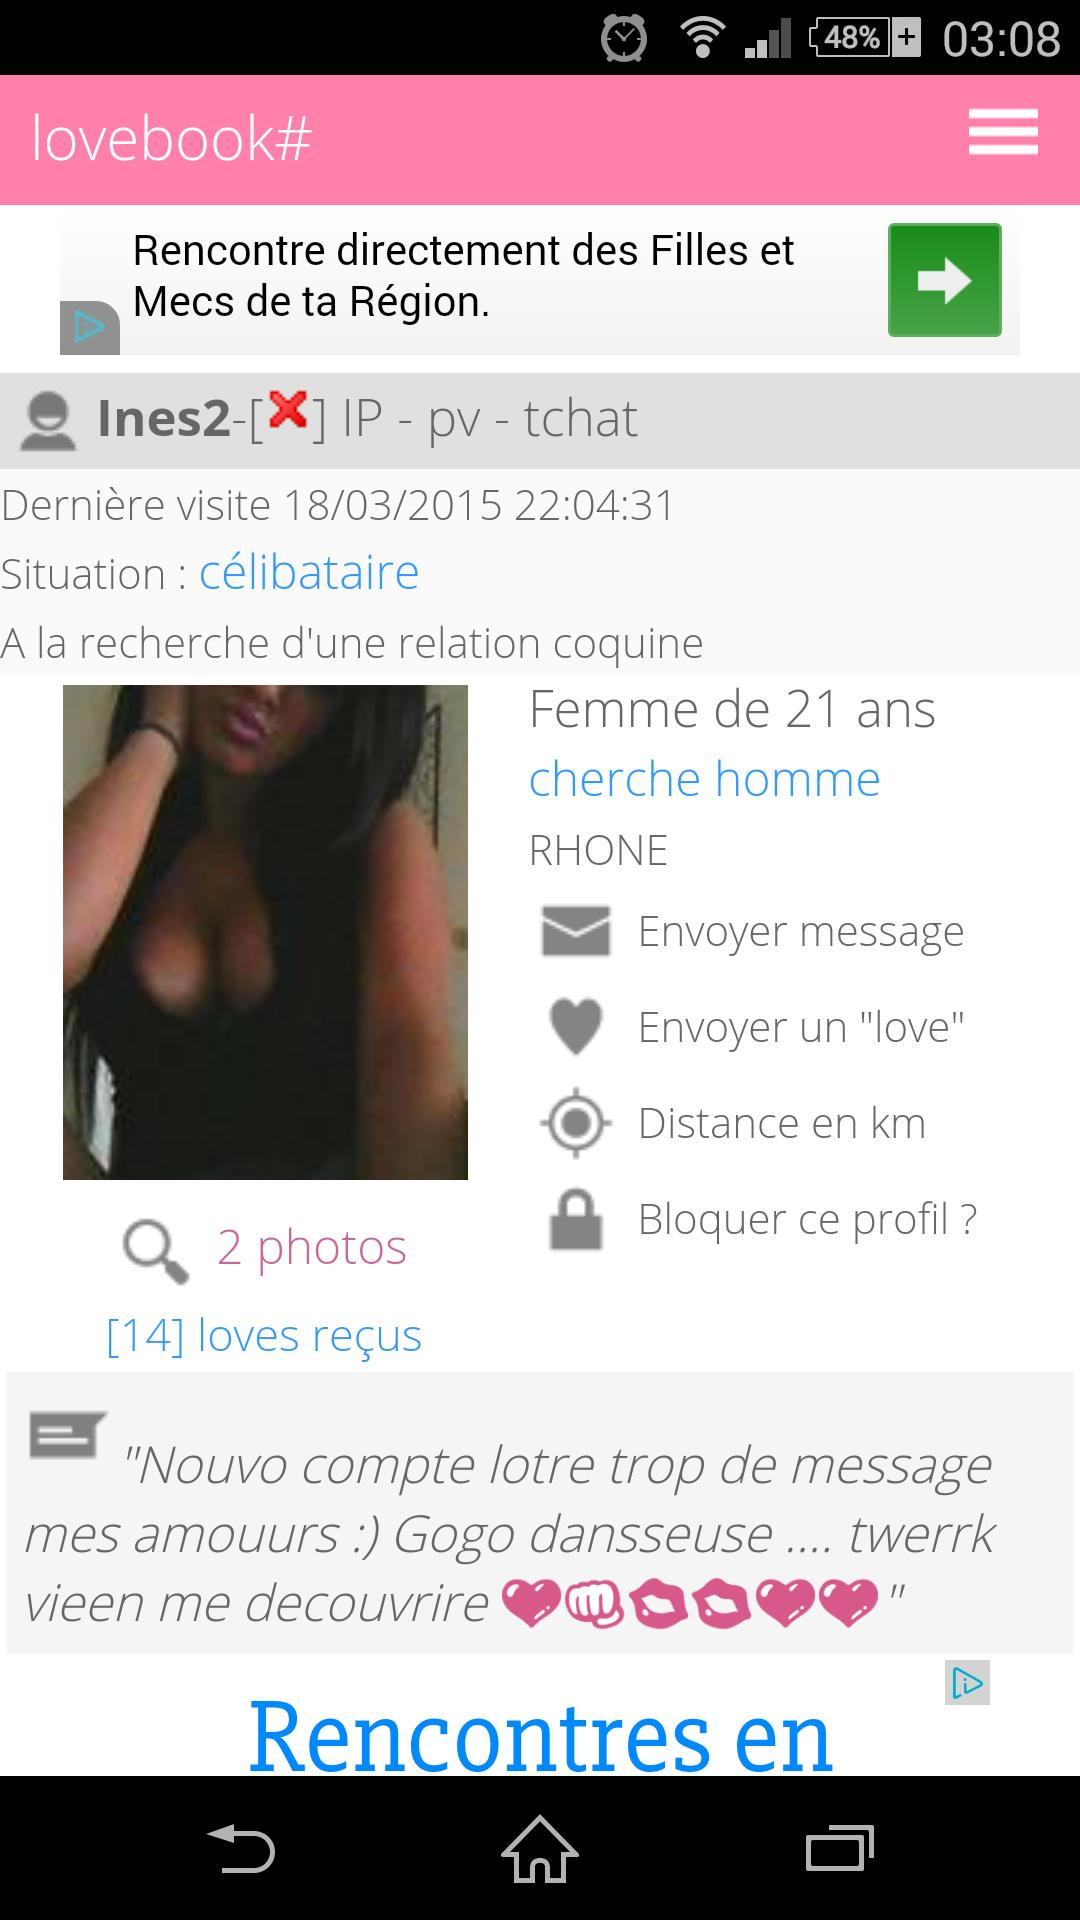 Top gay rencontres Apps Royaume-Uni